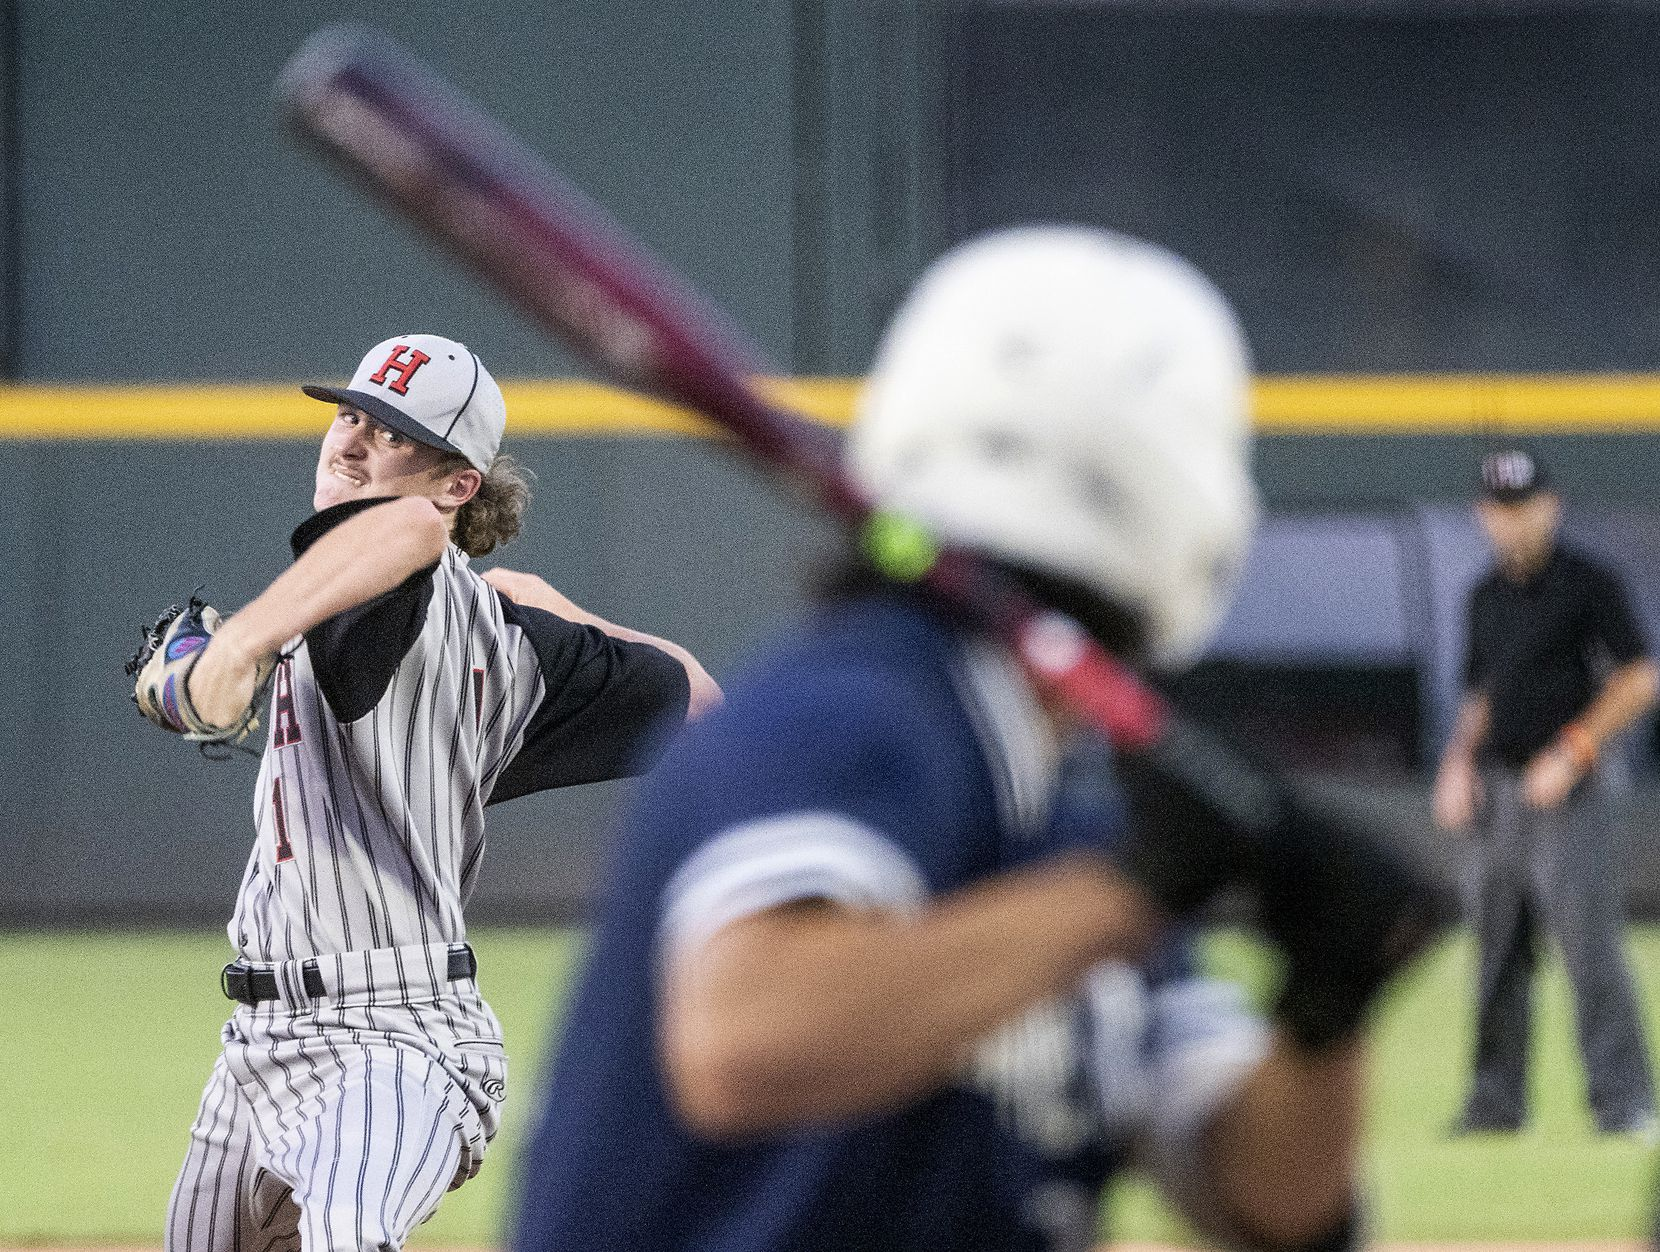 Rockwell-Heath, Baylor Baumann, (1), pitches against Comal Smithson Valley David DeHoyos, (22), during the first inning of the 2021 UIL 6A state baseball semifinals held, Friday, June 11, 2021, in Round Rock, Texas.    (Rodolfo Gonzalez/Special Contributor)